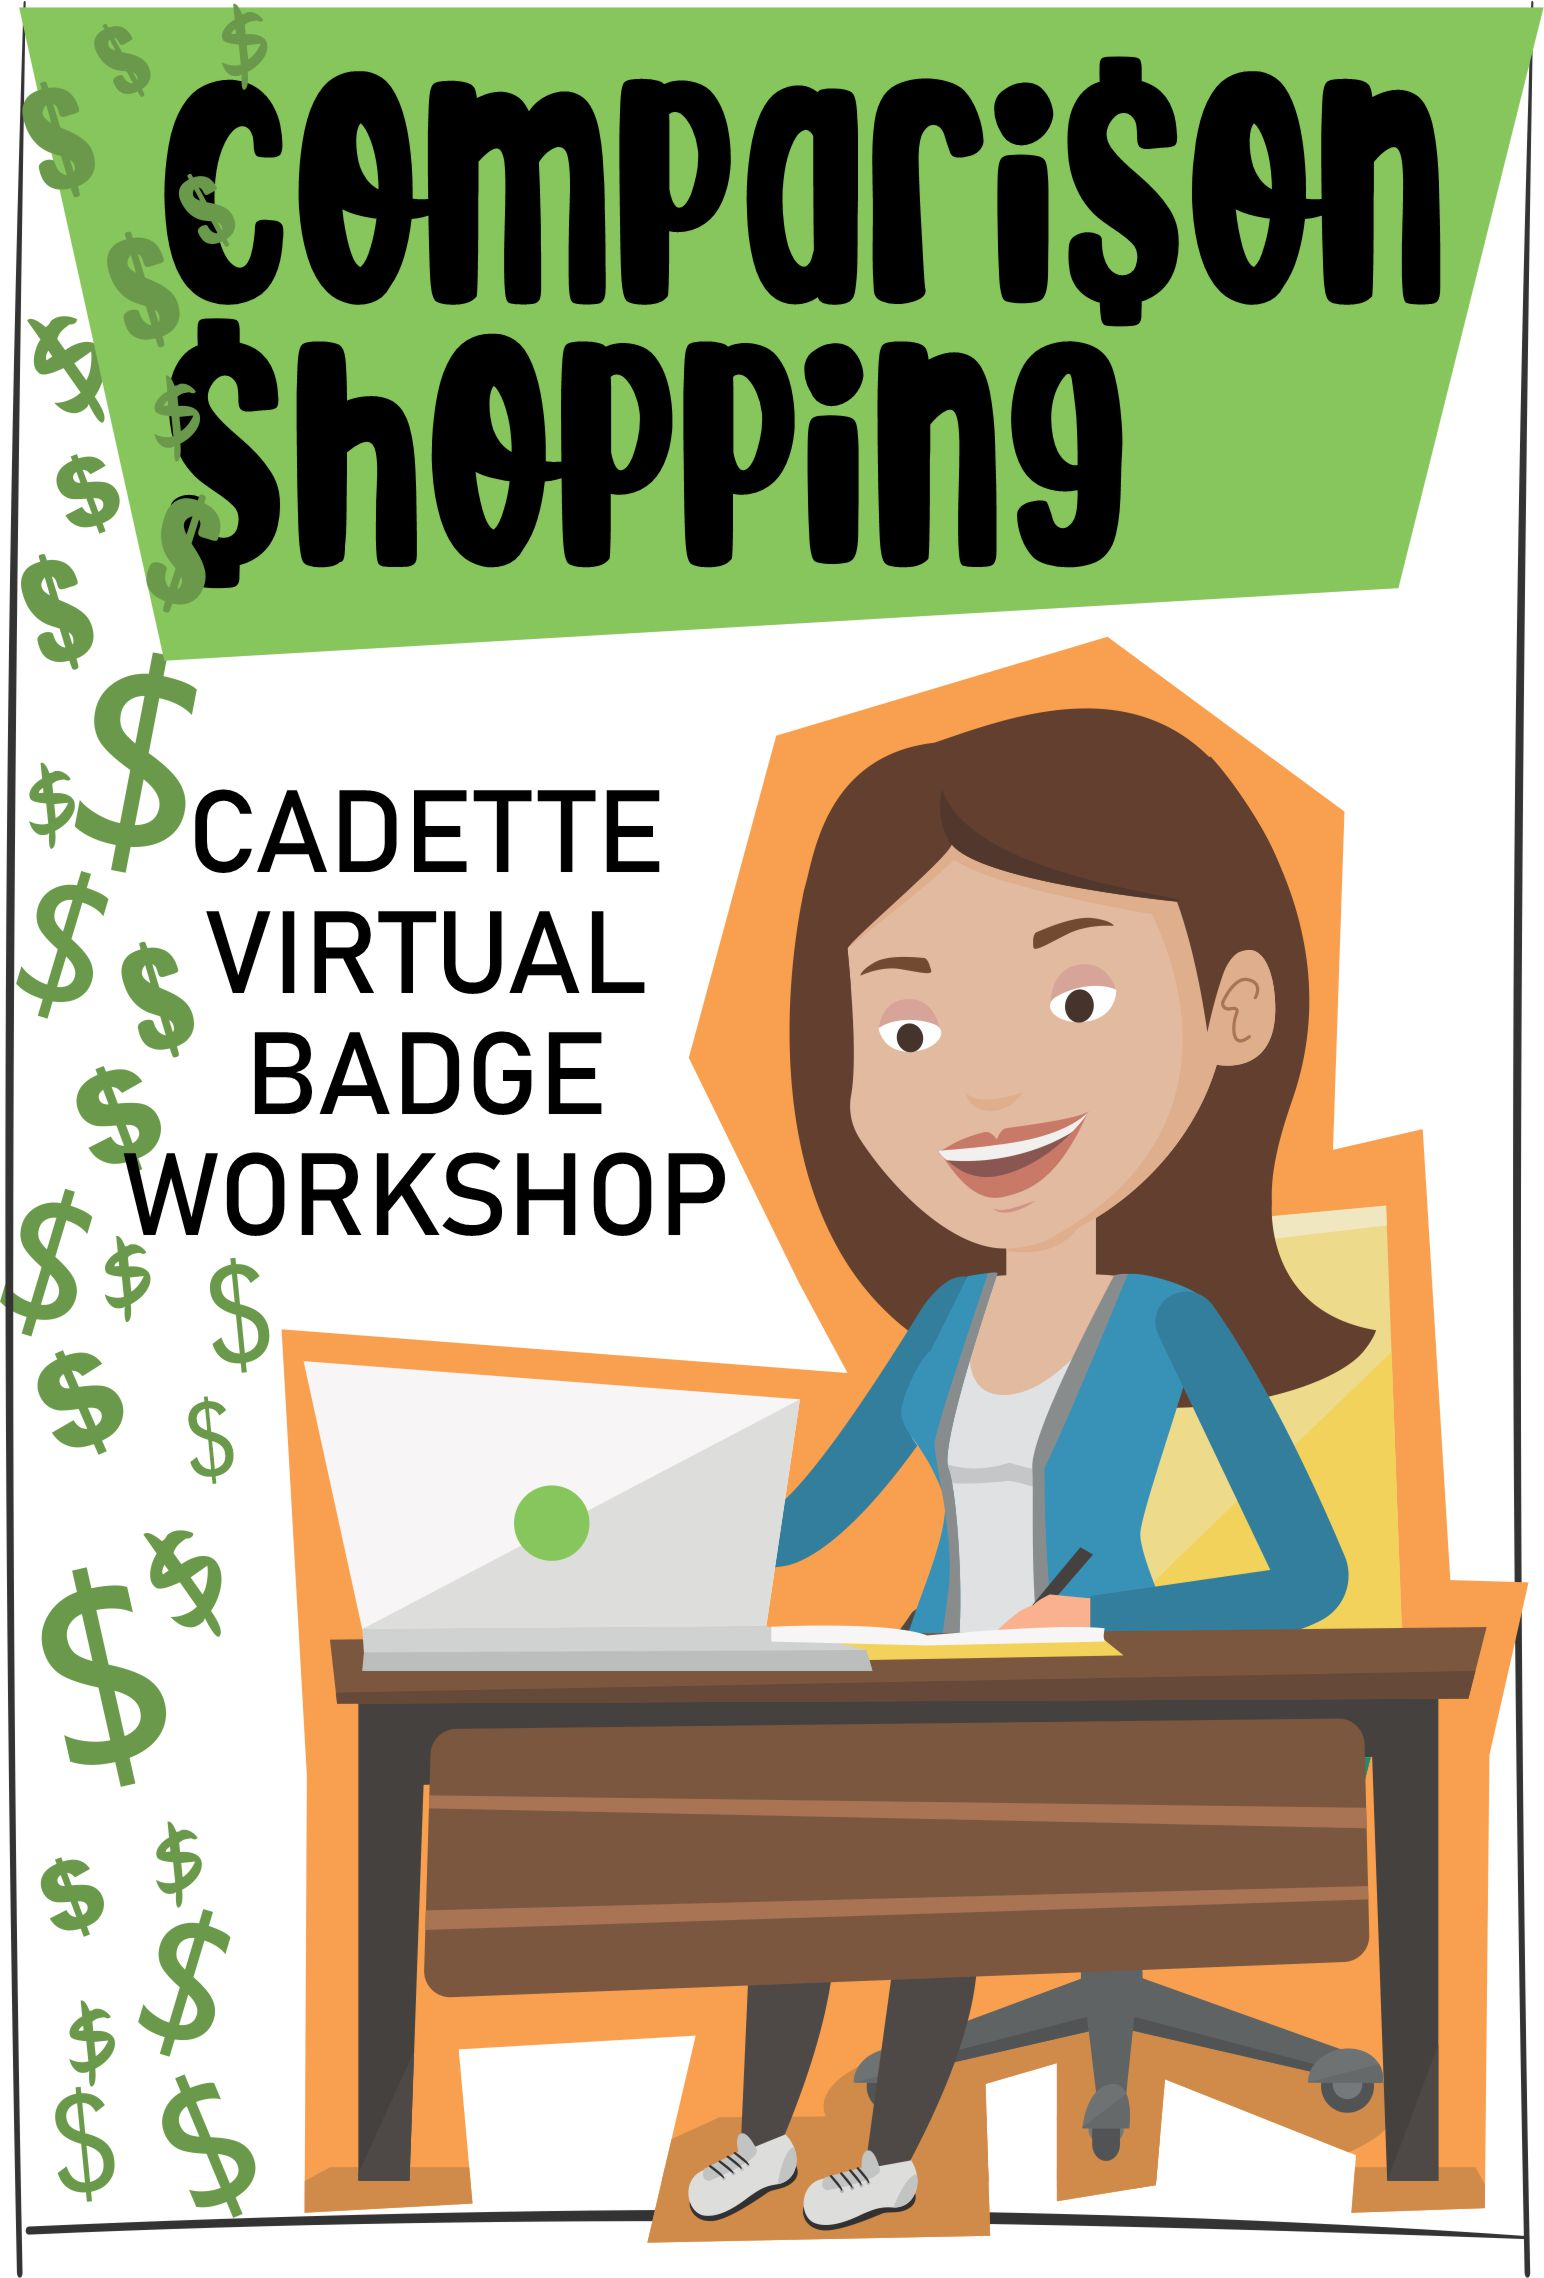 Join us for an engaging 1-hour virtual workshop where girls can learn how to comparison shop to get the best deals! #makingfriends #comparisonshopping #shopping #virtualworkshop #cadettes #gscadettes #girlscouts #onlineclass via @gsleader411